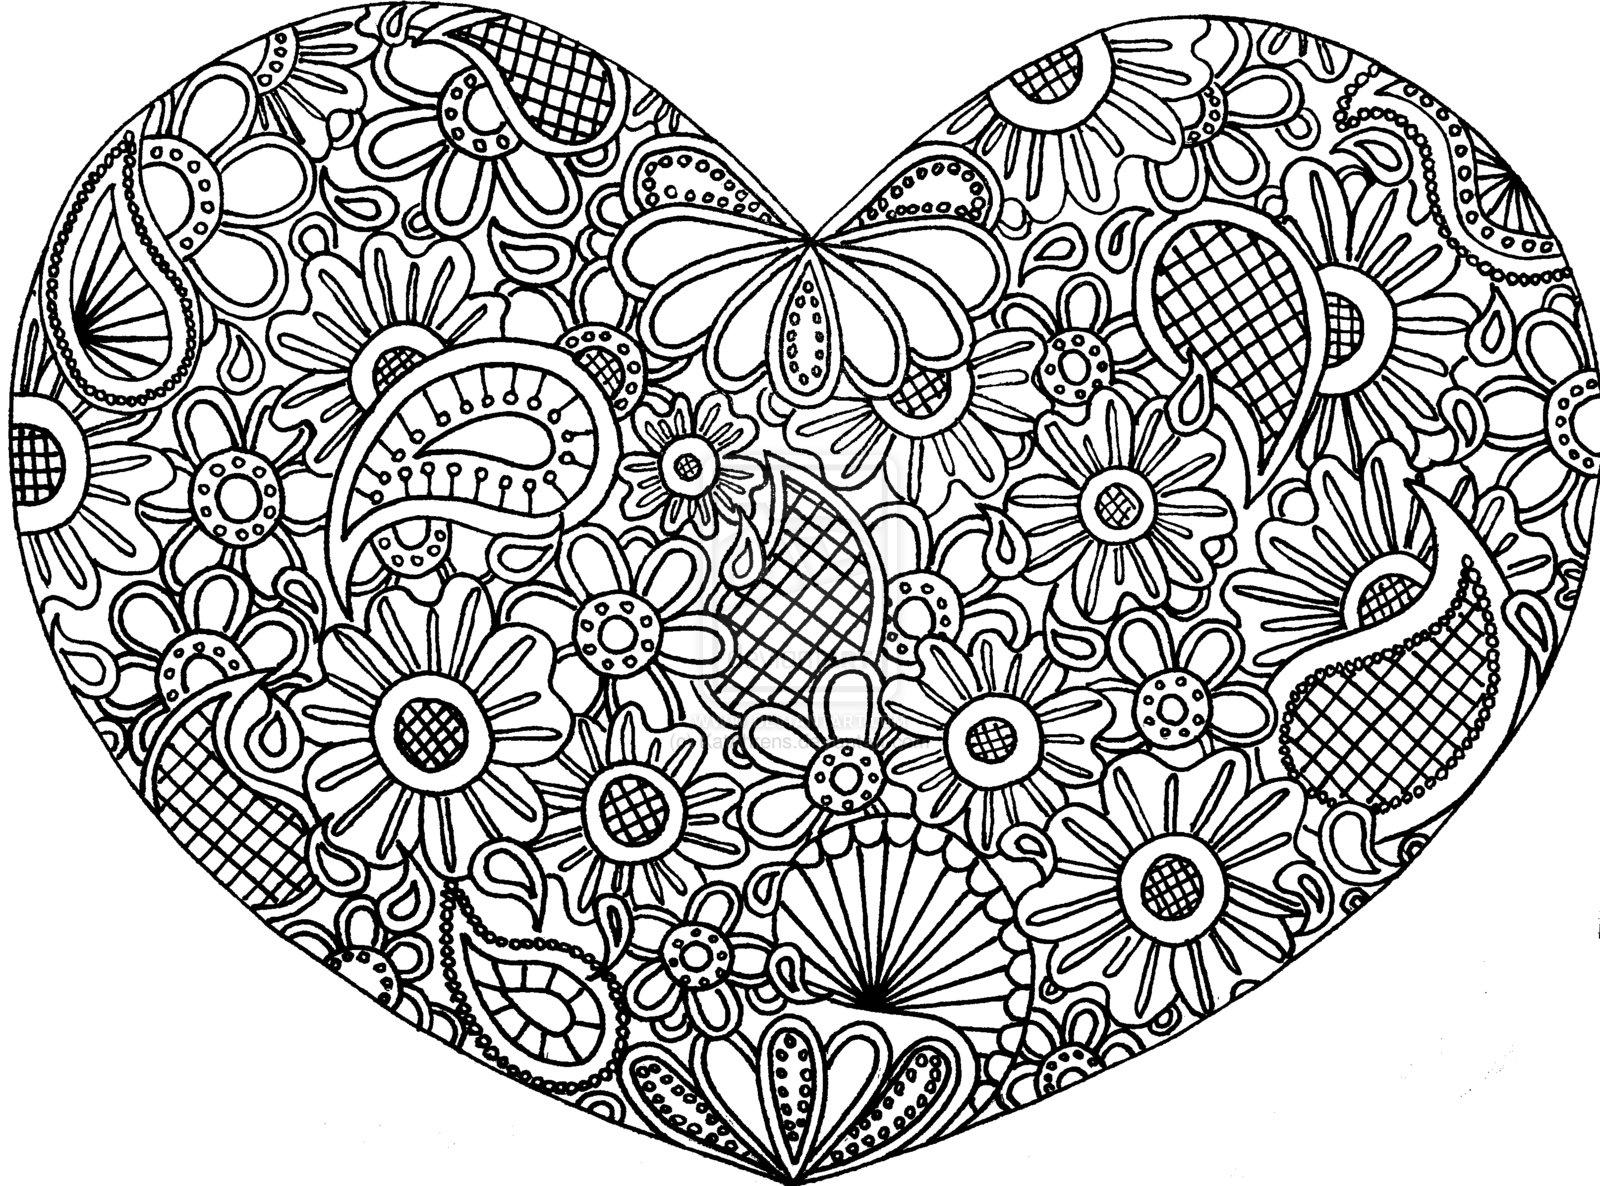 Colored Zentangles Hearts | Free doodle art coloring pages ...